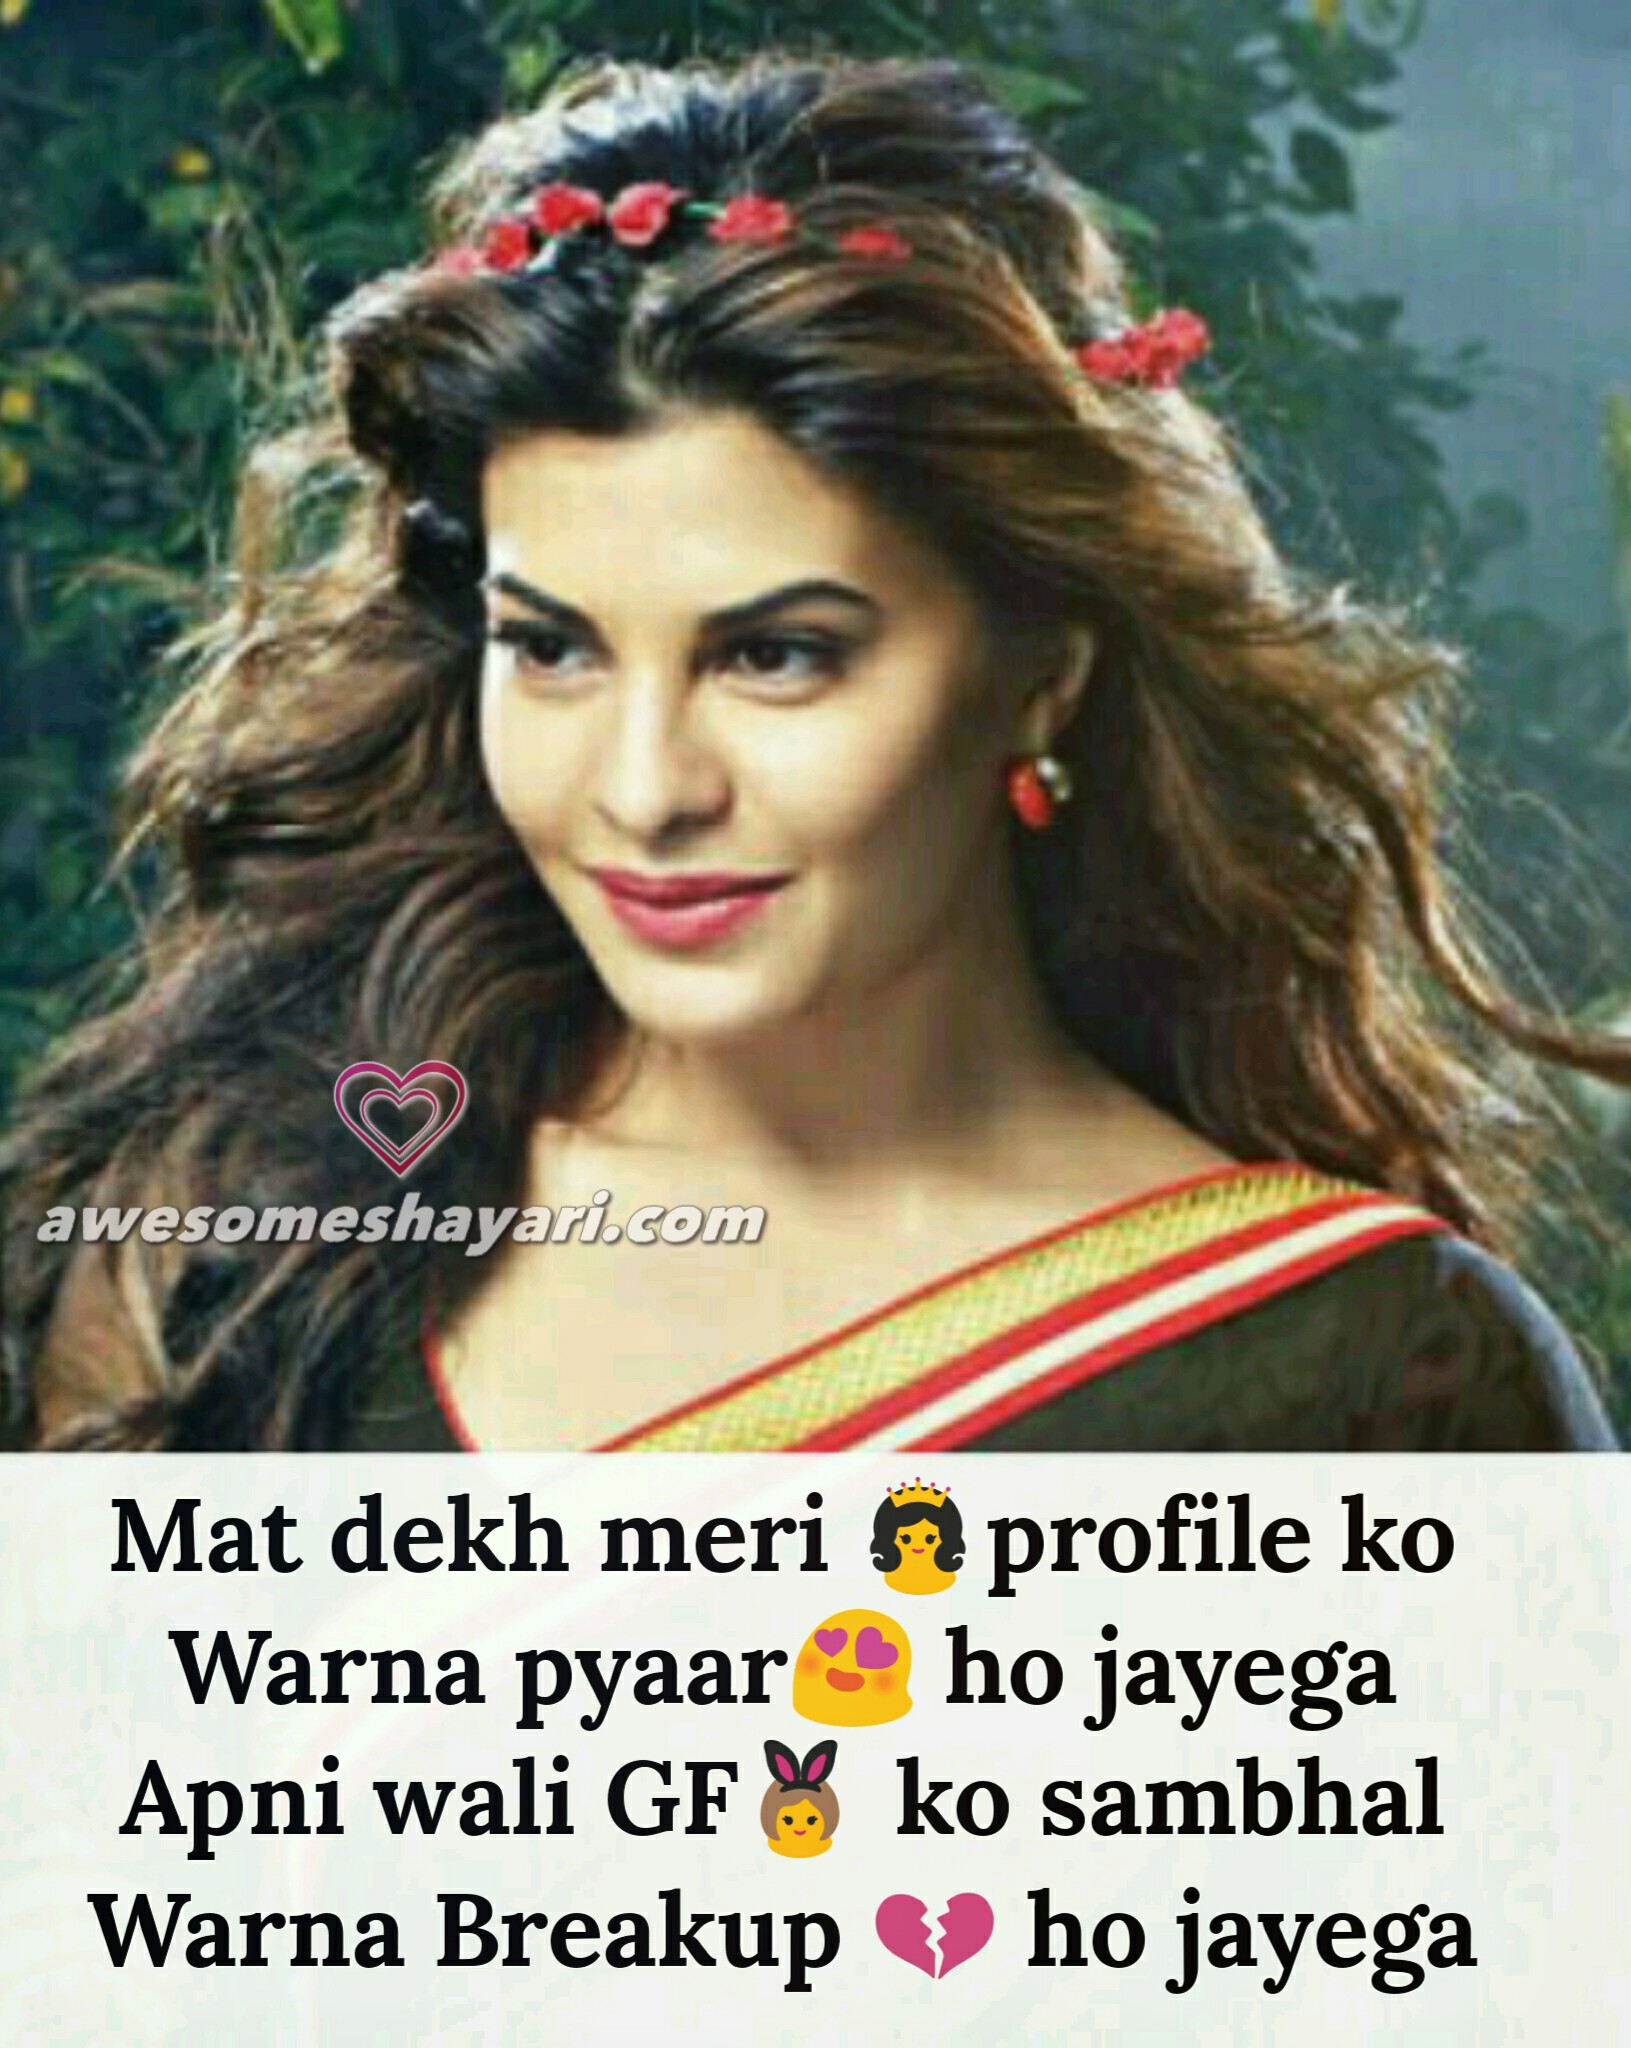 Funny shayari dp girls